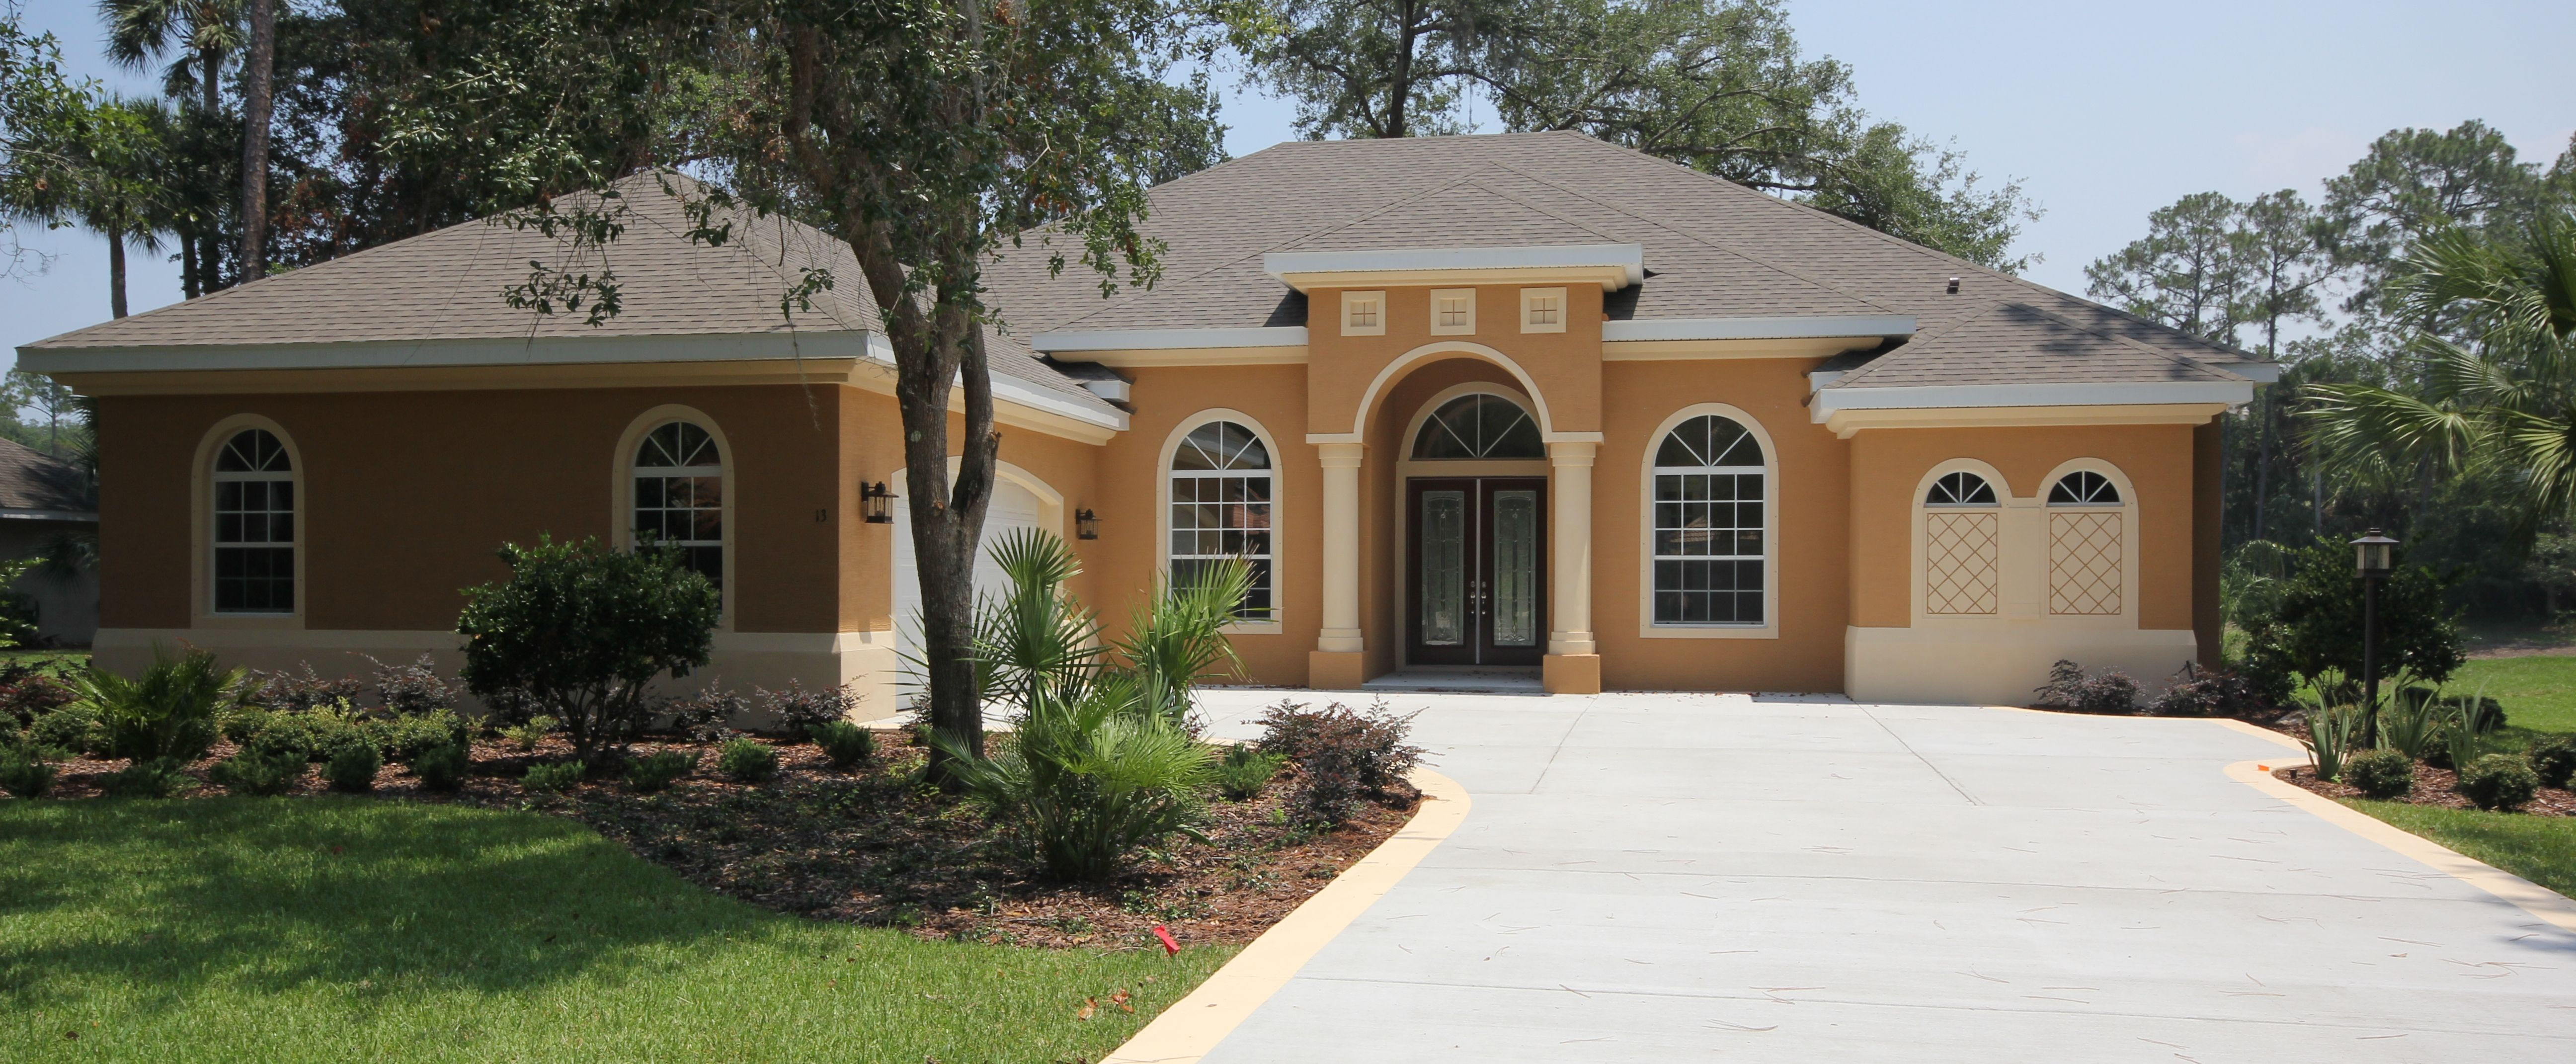 How Much Does It Cost To Paint A House In Orlando Fl Painting